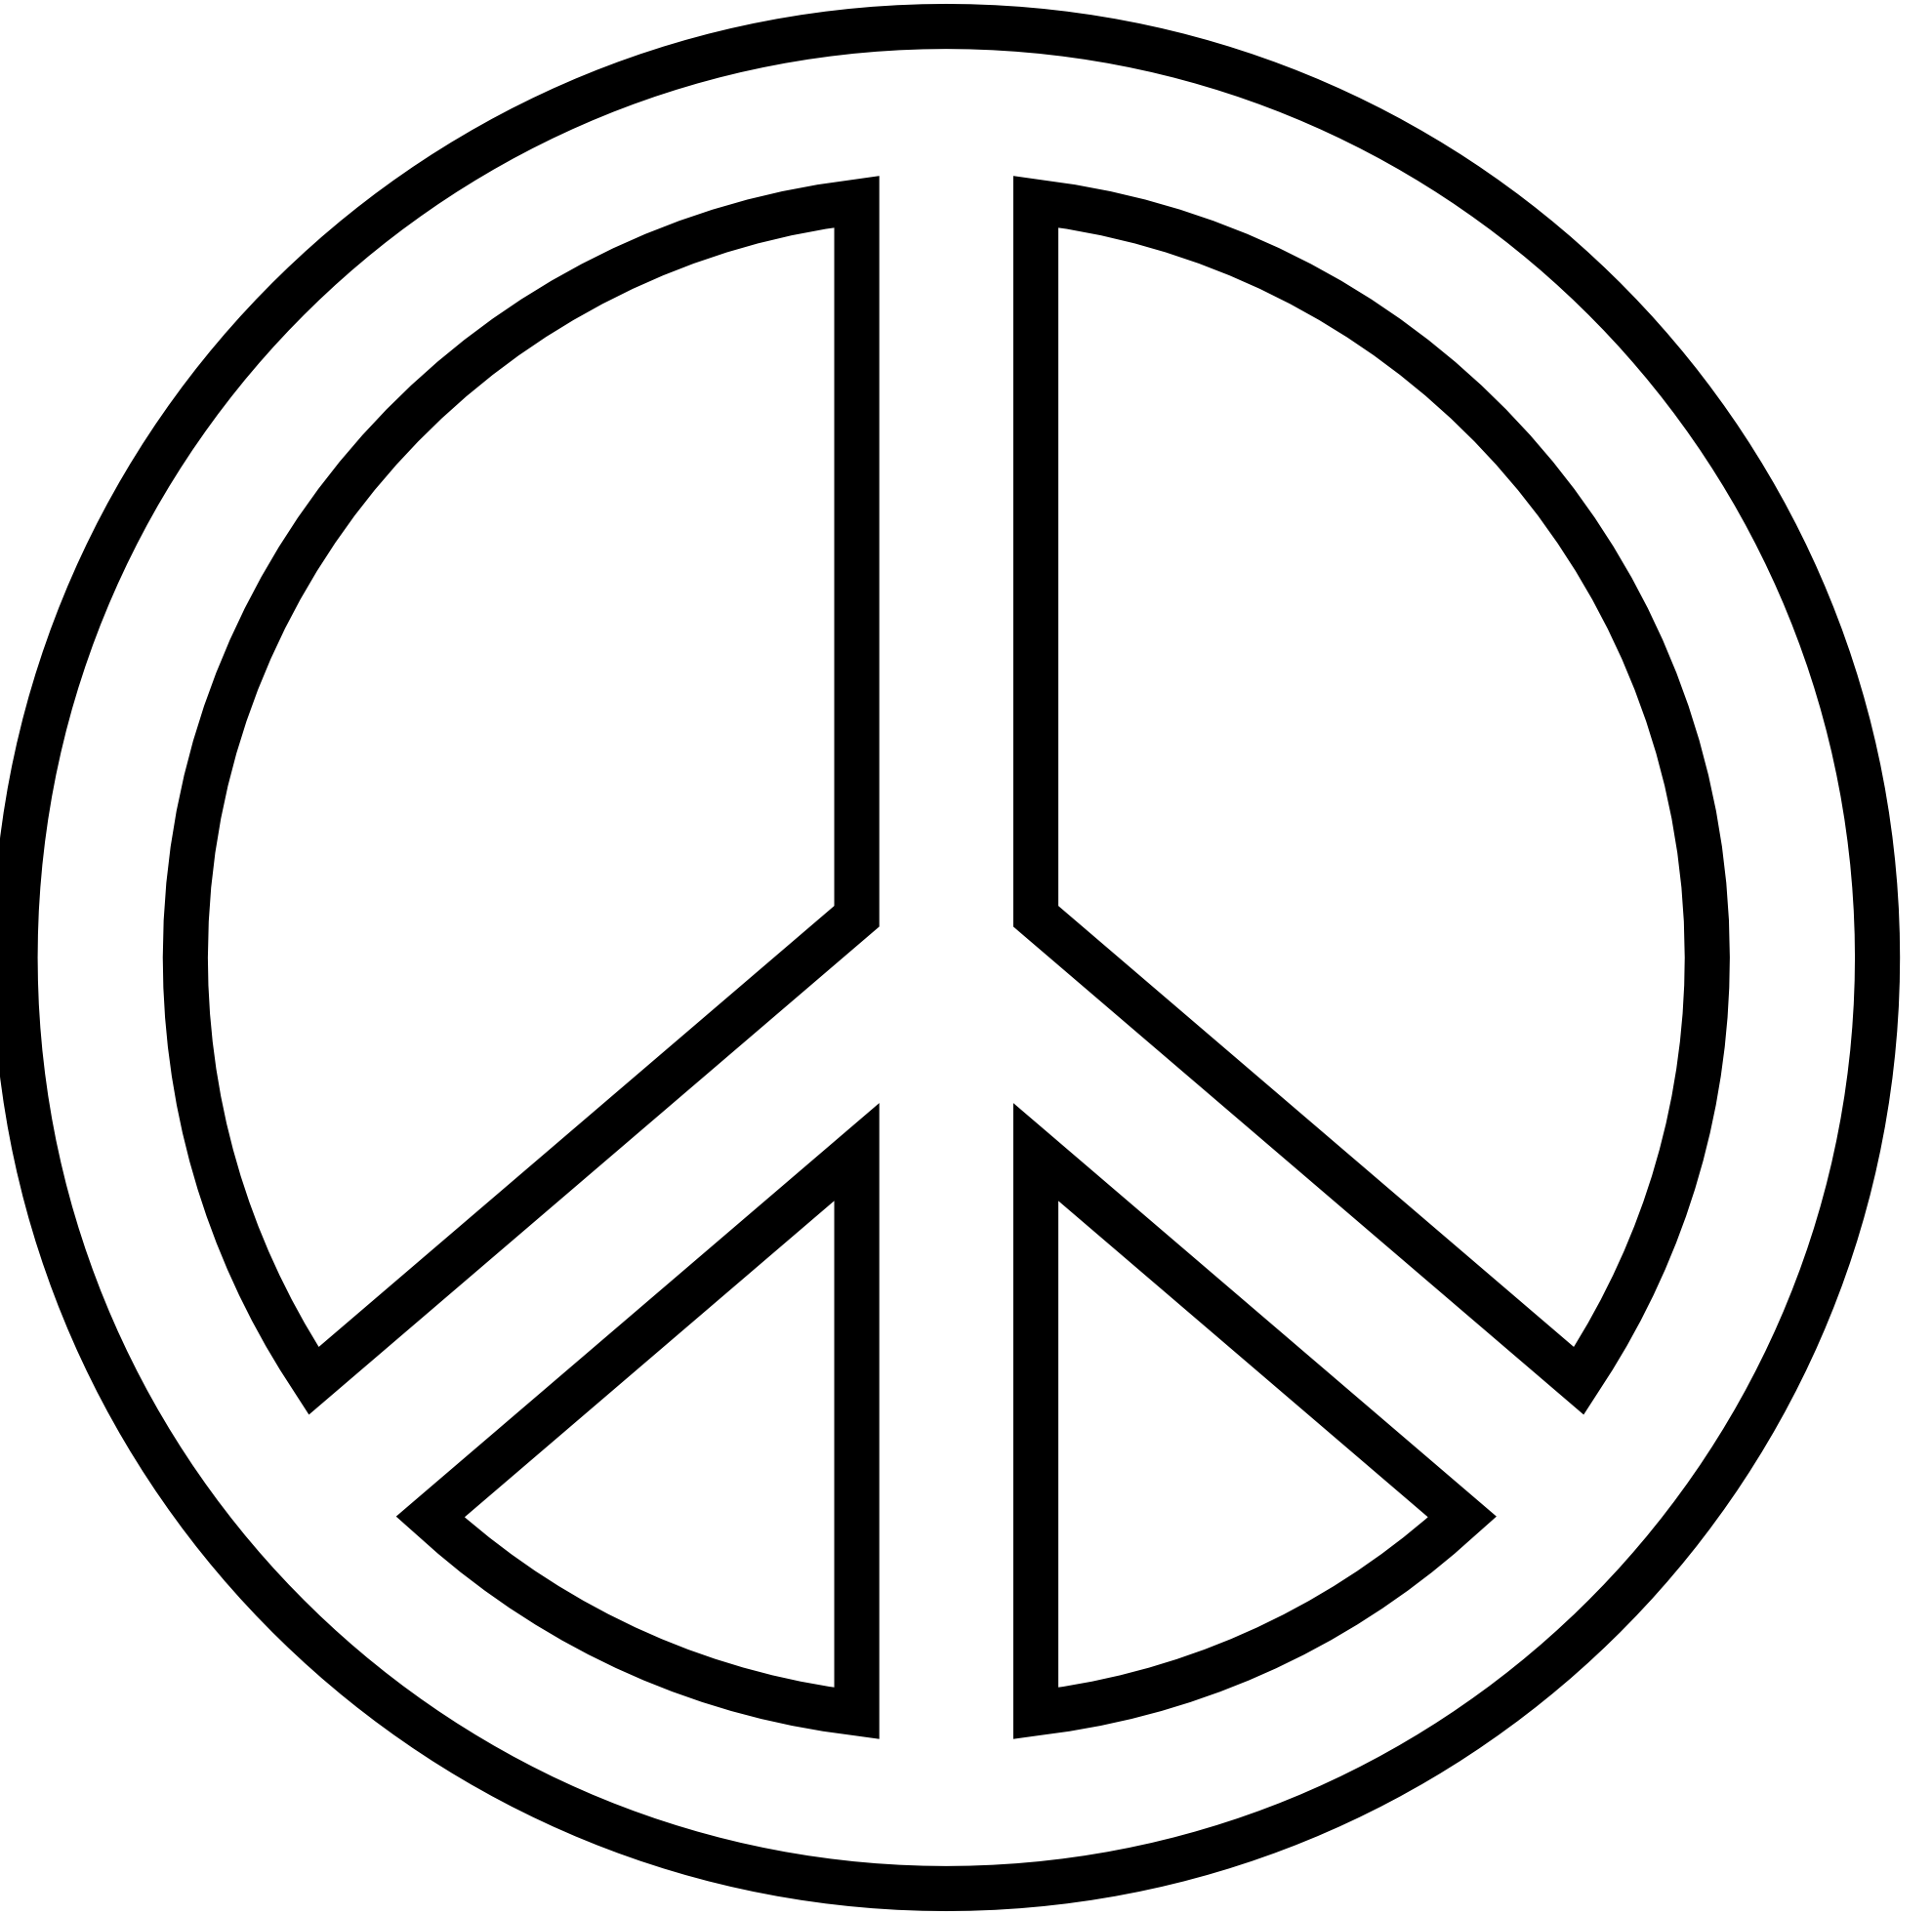 Peace sign clipart vector transparent Free Peace Sign, Download Free Clip Art, Free Clip Art on Clipart ... vector transparent